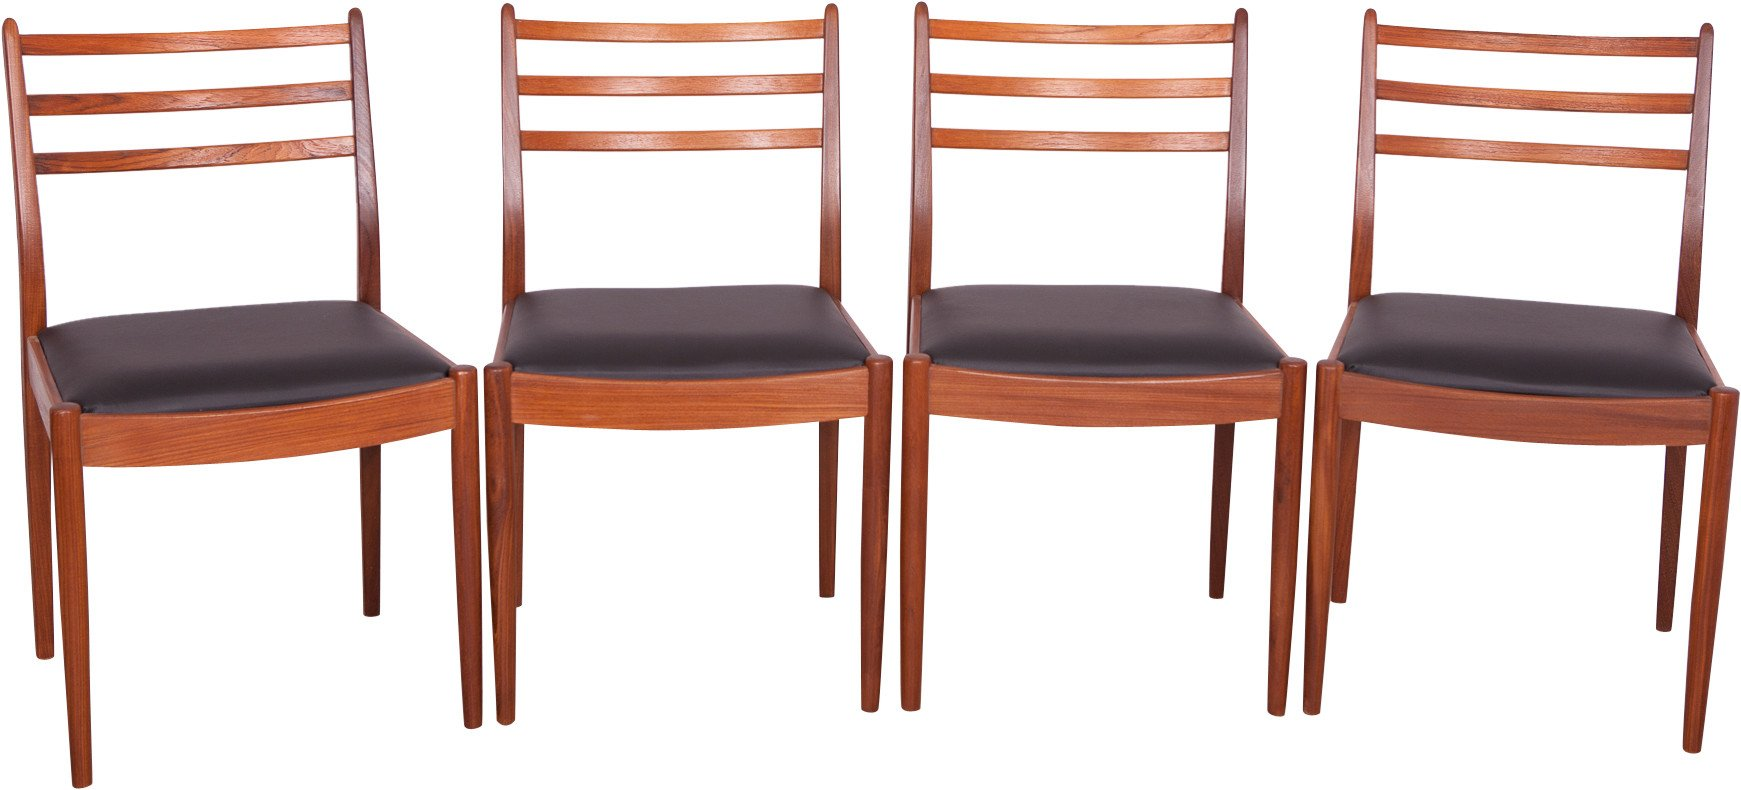 Set of Four Chairs by V. Wilkins for G-Plan, Great Britain, 1960s